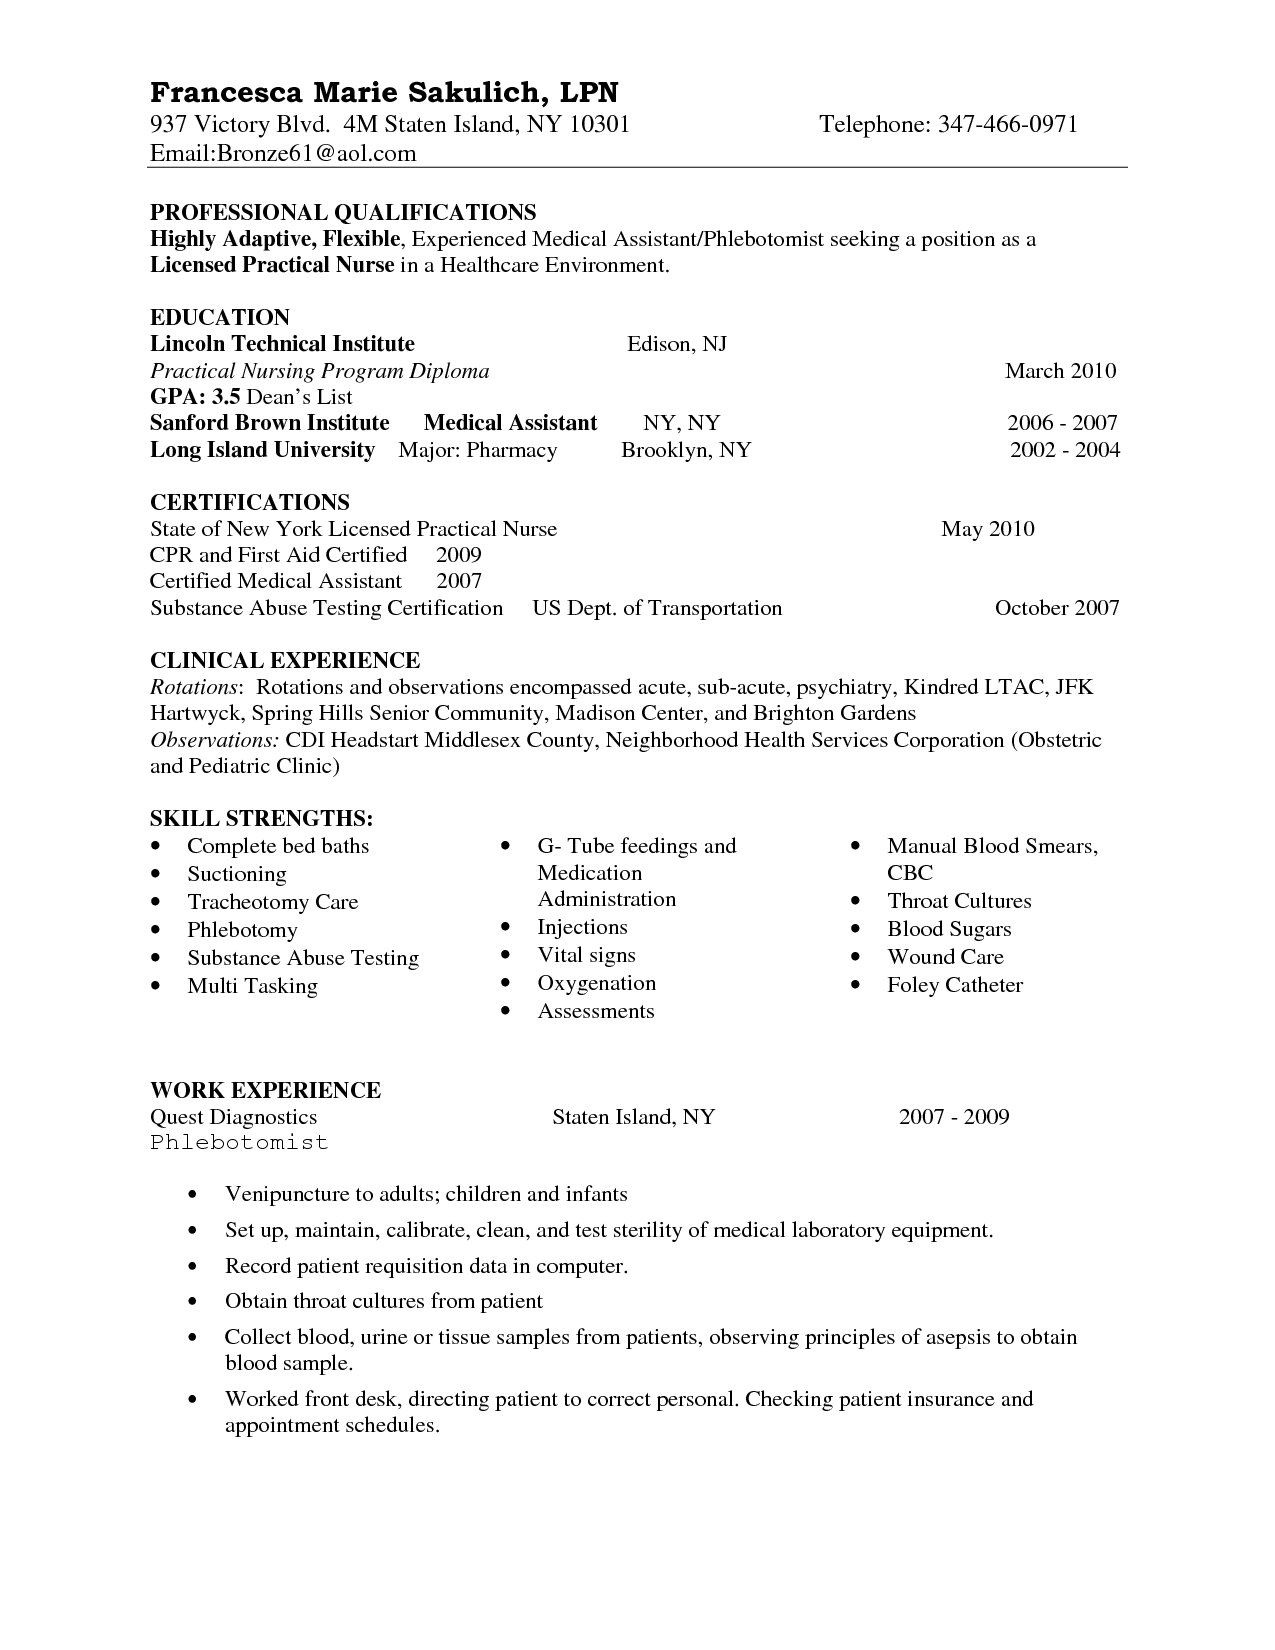 lpn resume resume cv sample resume resume tips cv design resume design